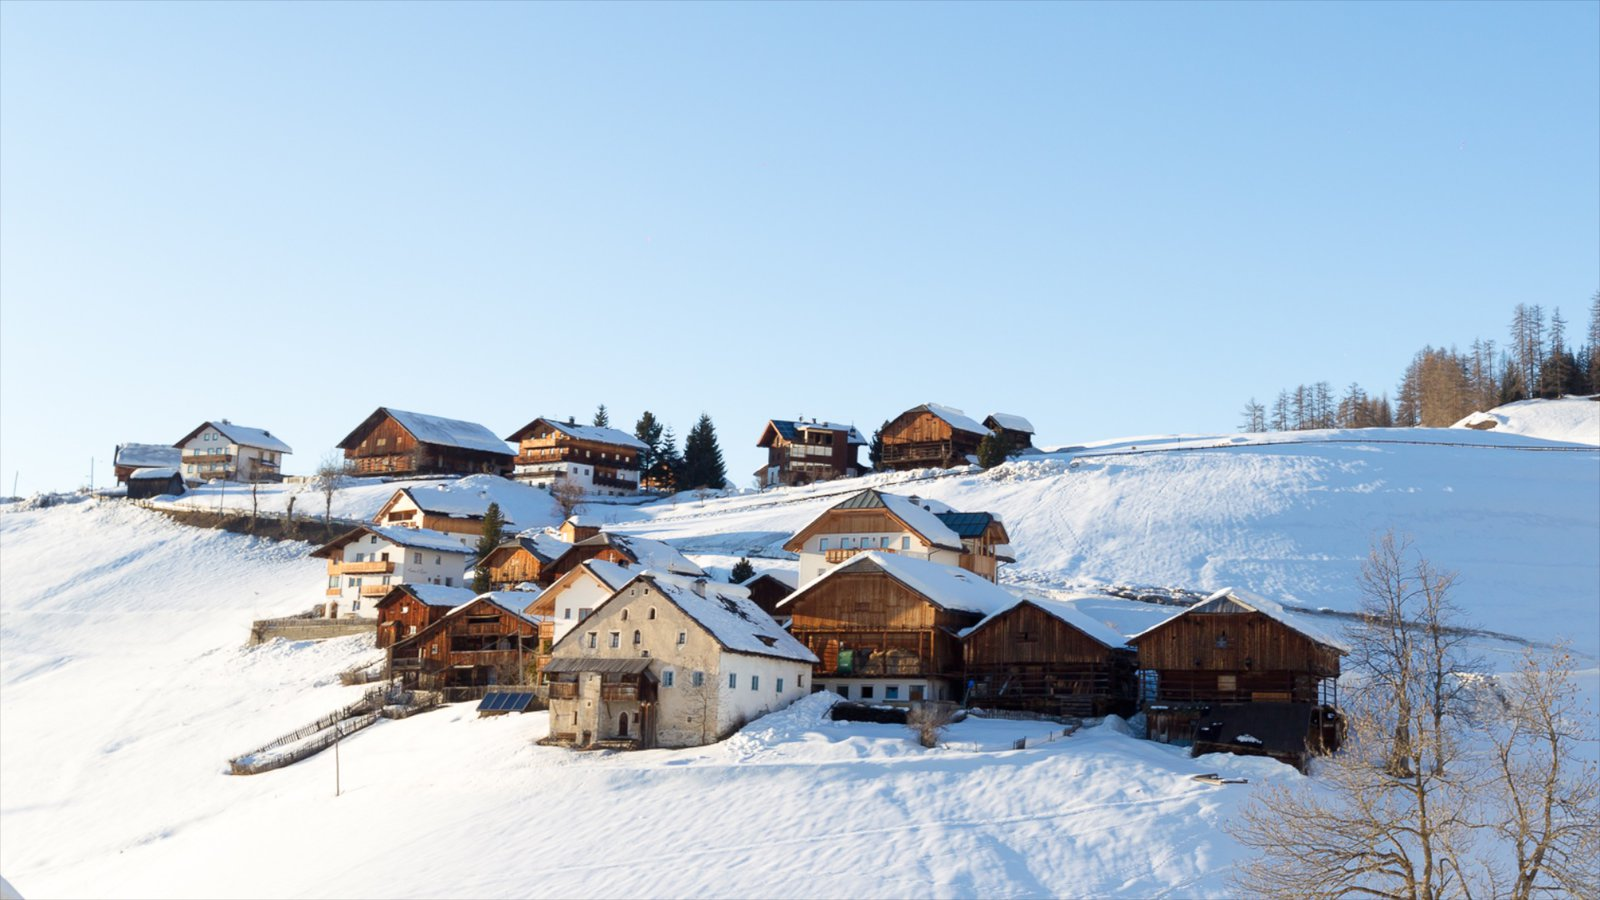 Alta Badia which includes a small town or village and snow